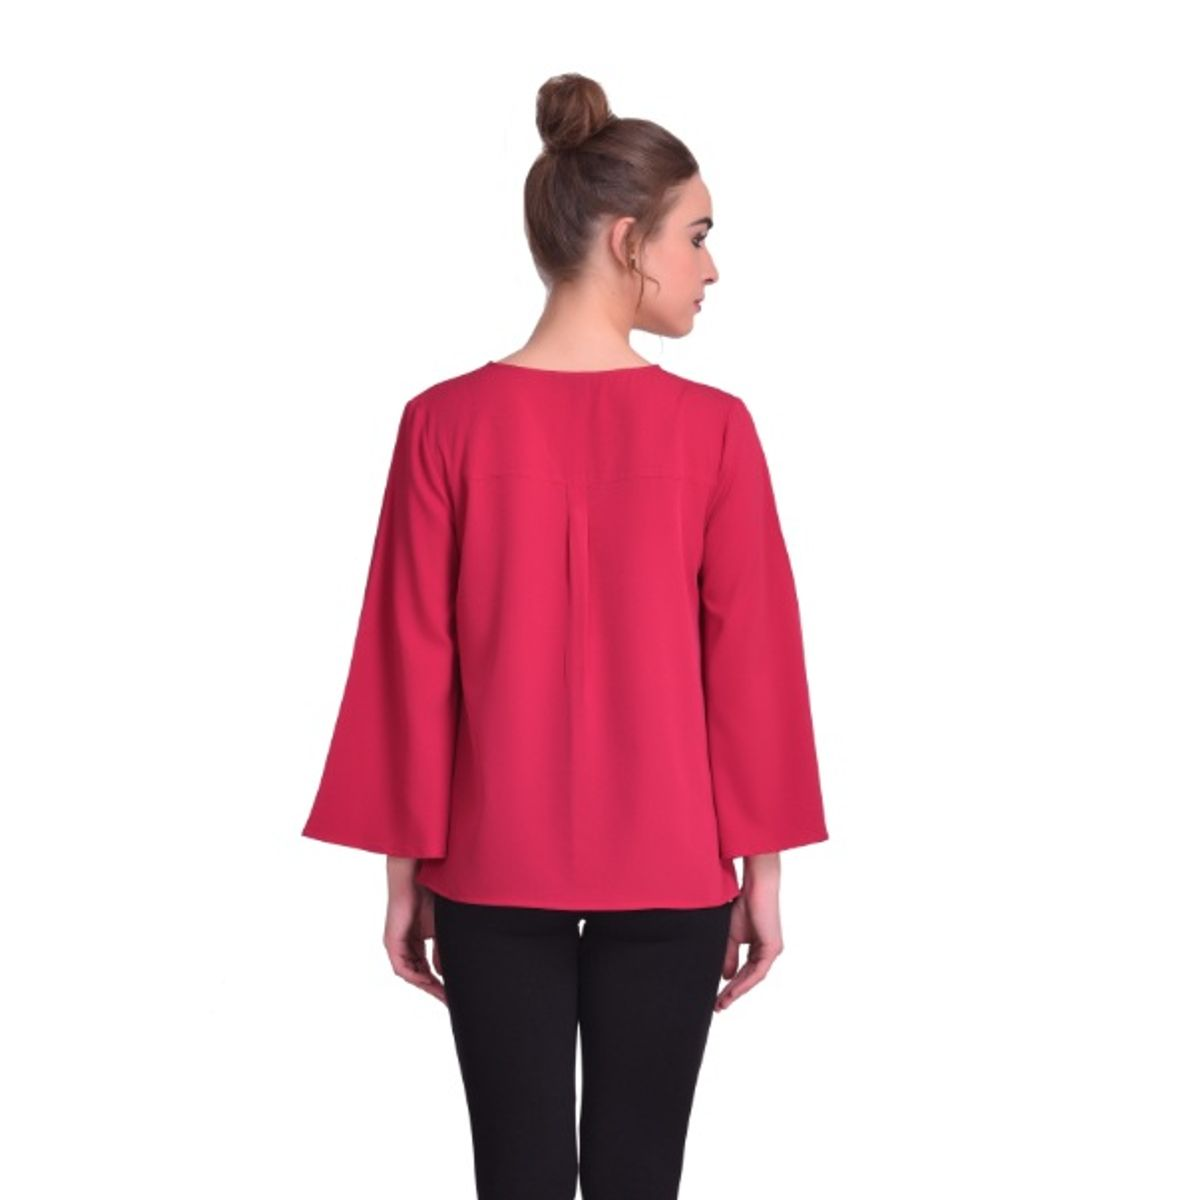 STSF0806-Saieraa Marsala Color poncho Flare Top with show buttons